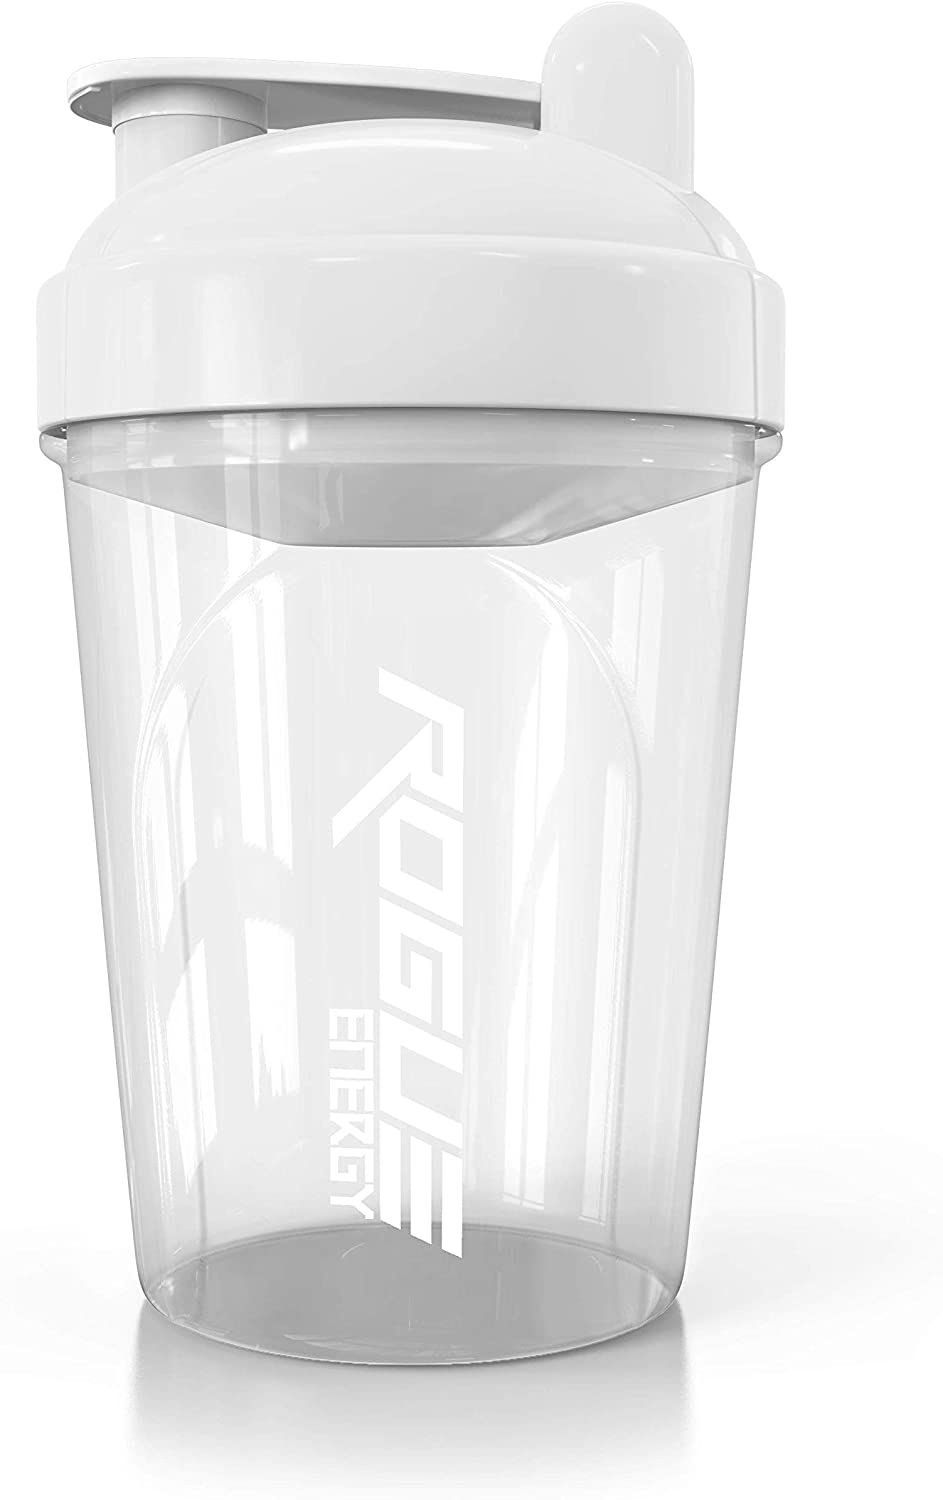 Rogue Energy Shaker Bottle | 16-Ounce, 500ml, BPA Free, Dishwasher Safe, Clear and White (Showcase Edition)